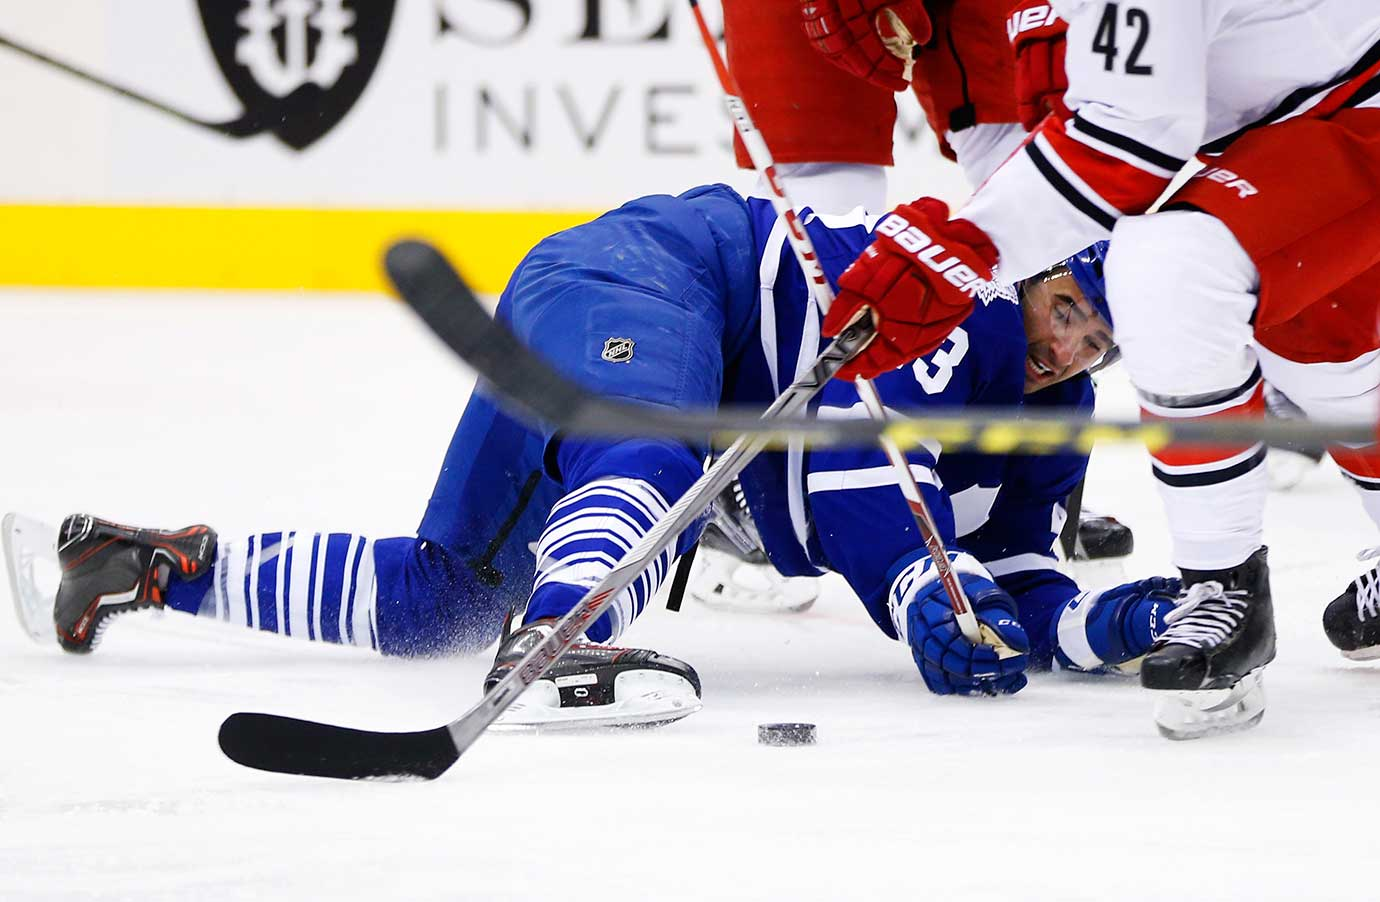 Nazem Kadri (43) of Toronto tries to get at the puck in a game against the Carolina Hurricanes.